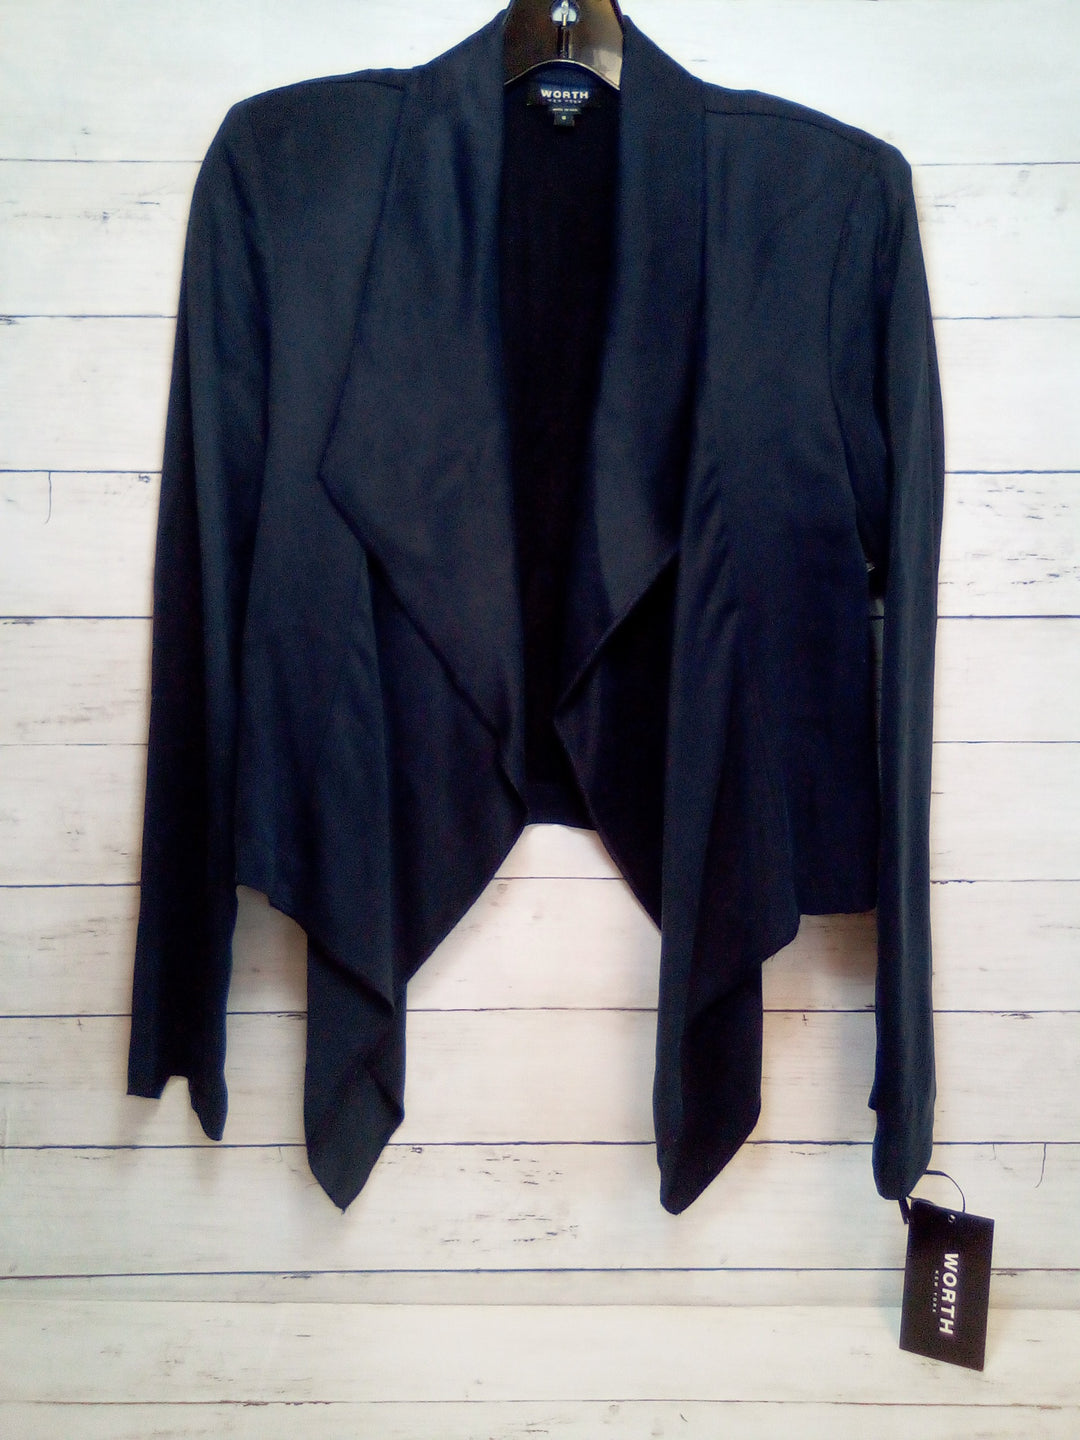 Primary Photo - BRAND: WORTH NY <BR>STYLE: BLAZER JACKET <BR>COLOR: BLACK <BR>SIZE: XS <BR>OTHER INFO: NEW! <BR>SKU: 216-21612-86508